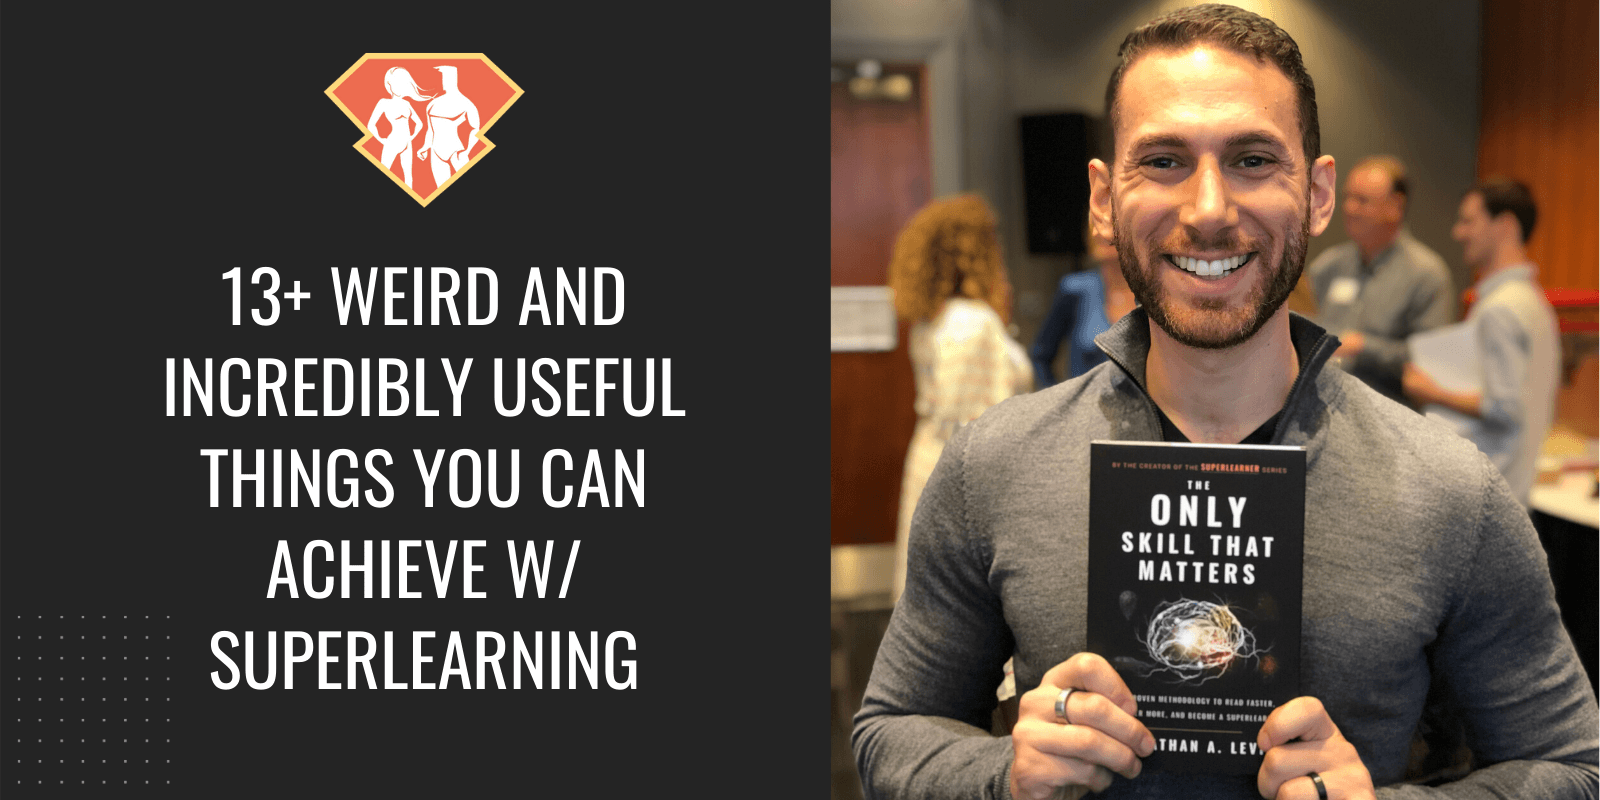 Discover 13+ weird and incredibly useful things you can achieve by learning how to learn, through Jonathan Levi's personal experience with SuperLearning.